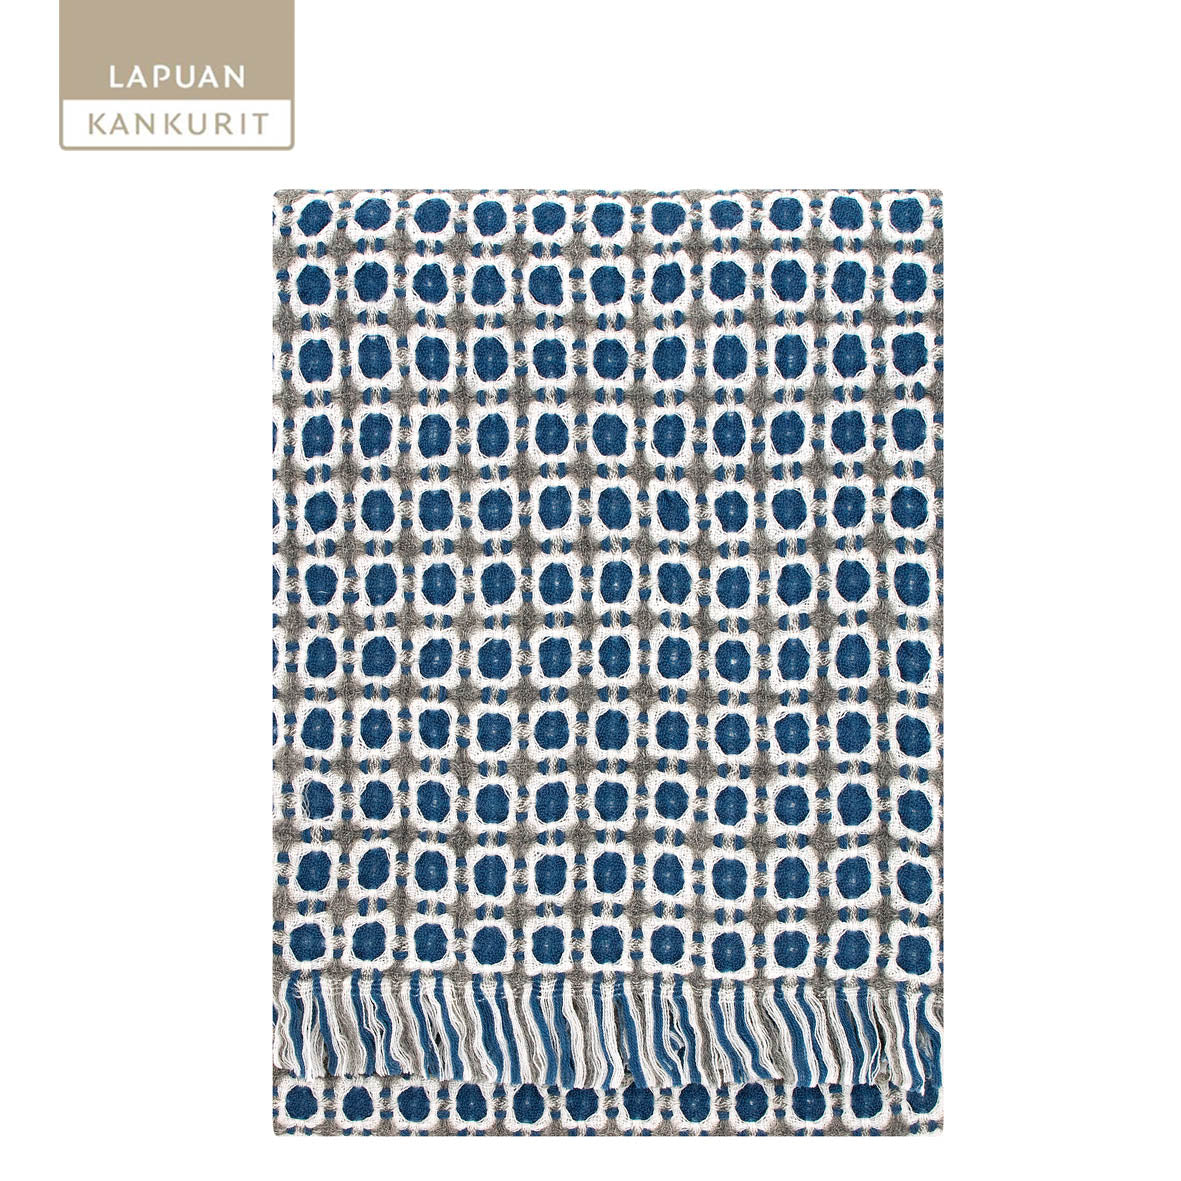 LAPUAN KANKURIT Corona Woollen Throw, 130x170cm